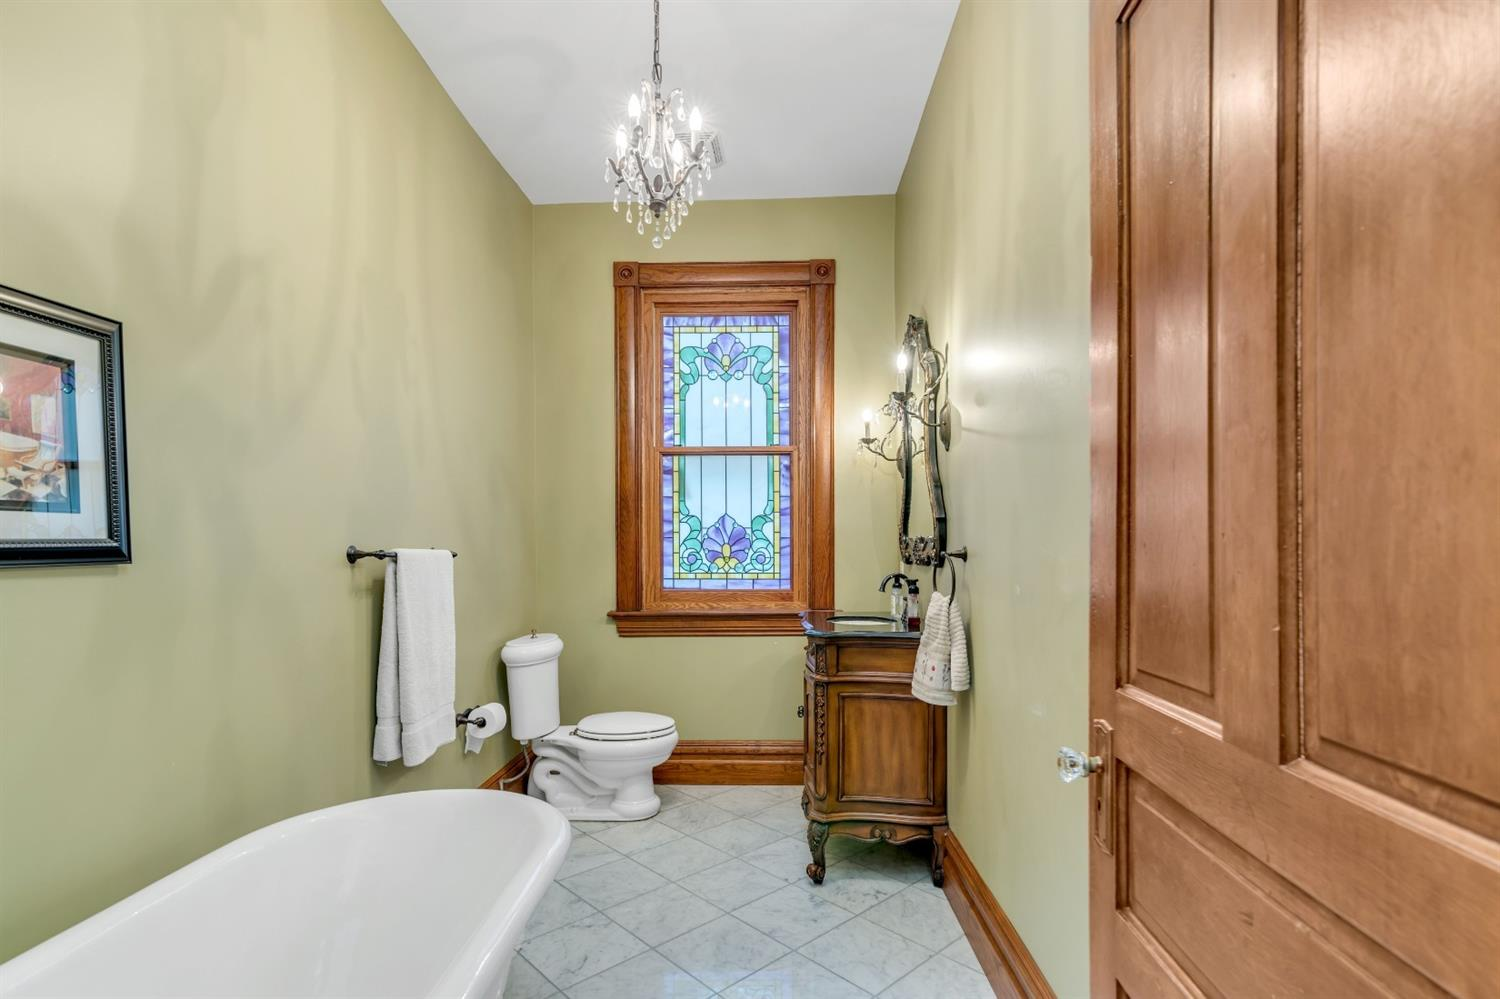 1st floor bath with beautiful stained glass window.